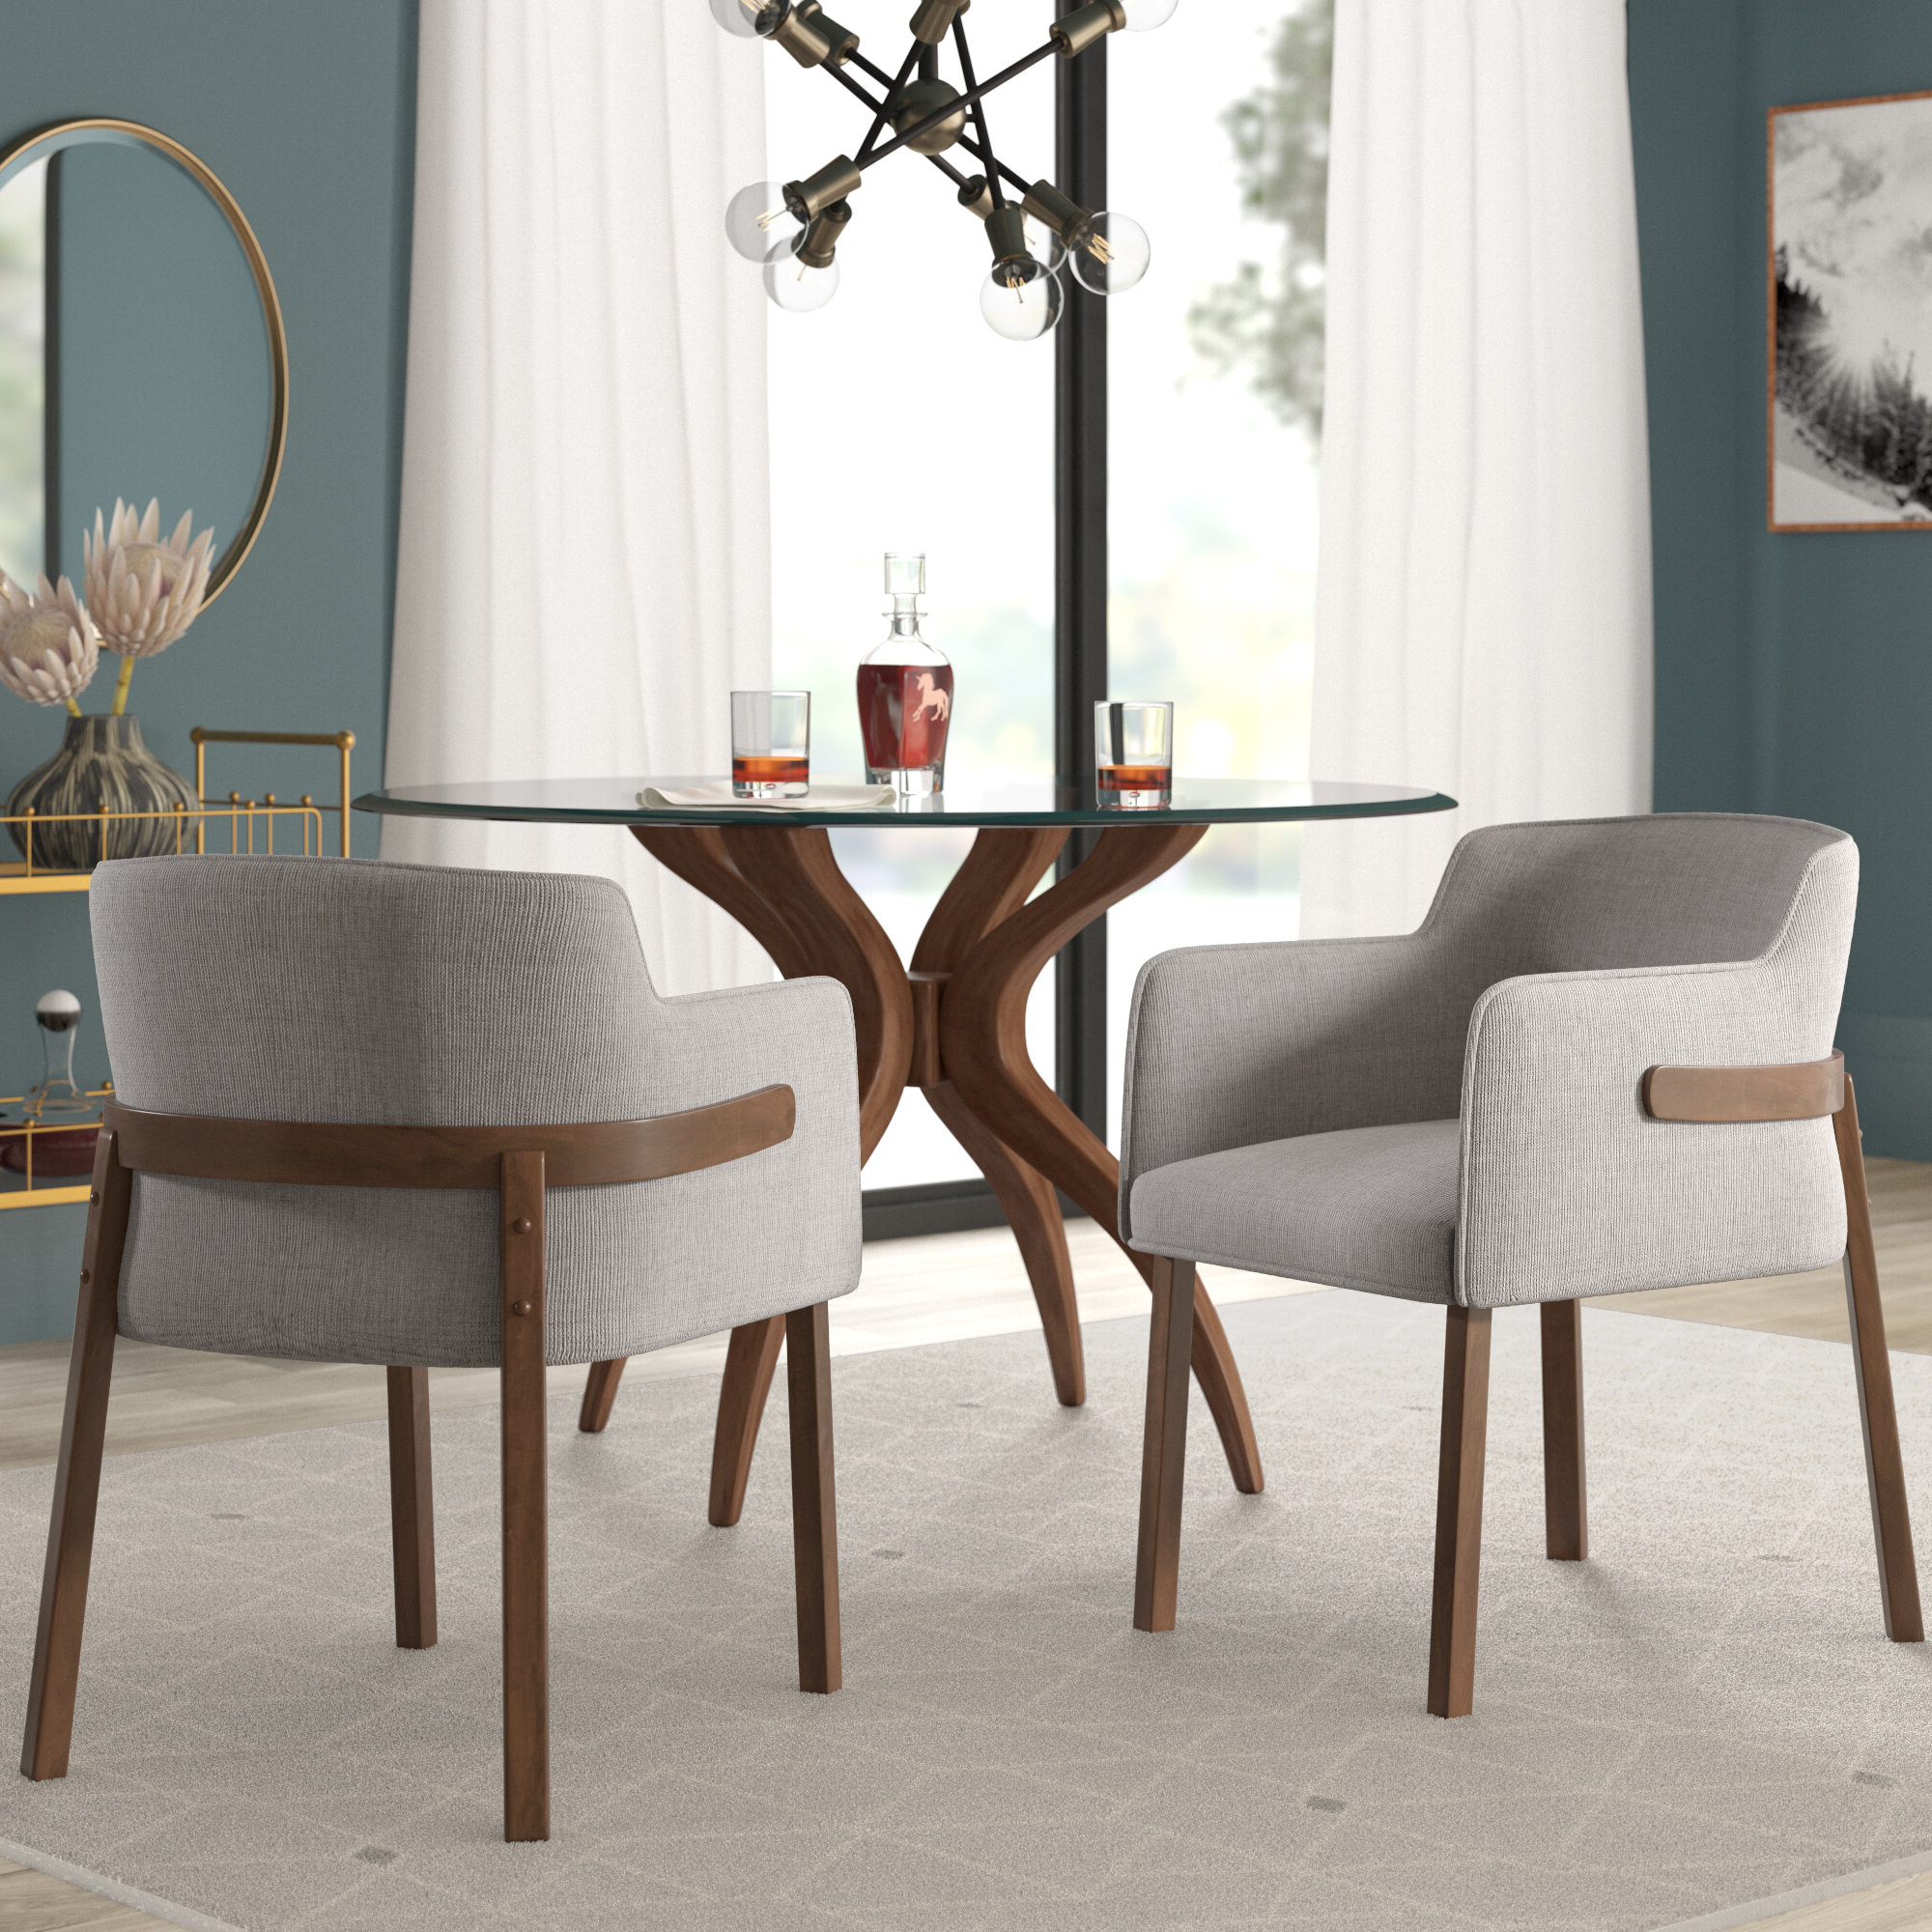 Mukai 5 Piece Dining Sets Within 2020 Mercury Row Mukai Upholstered Dining Chair & Reviews (View 12 of 25)